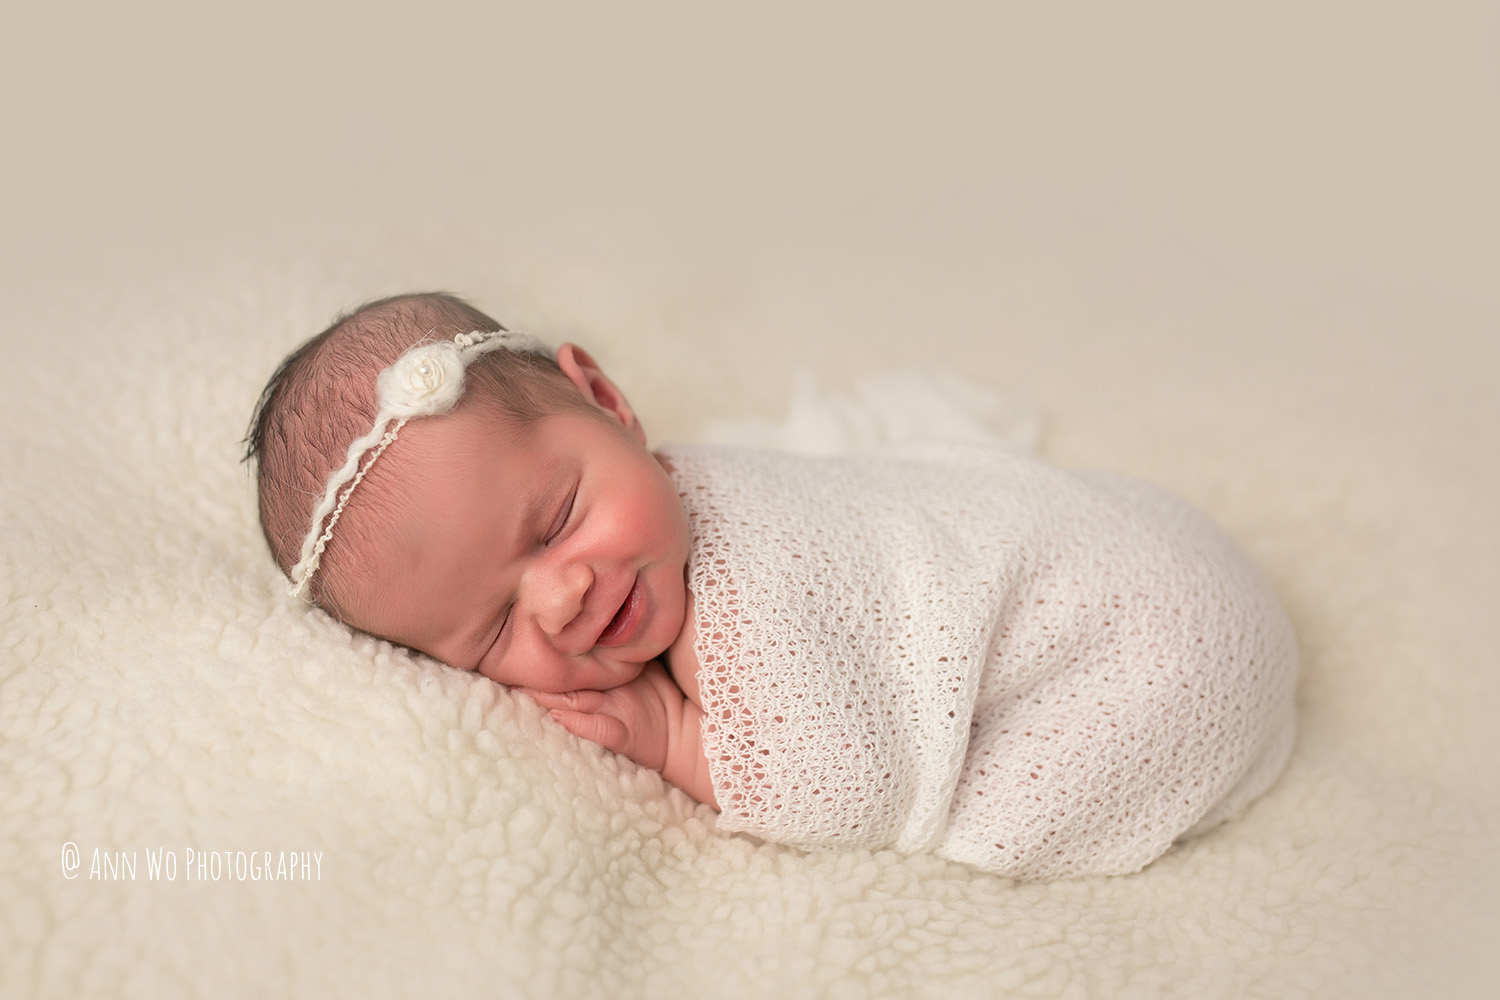 newborn-baby-photography-london-lifestyle-ann-wo-045.JPG